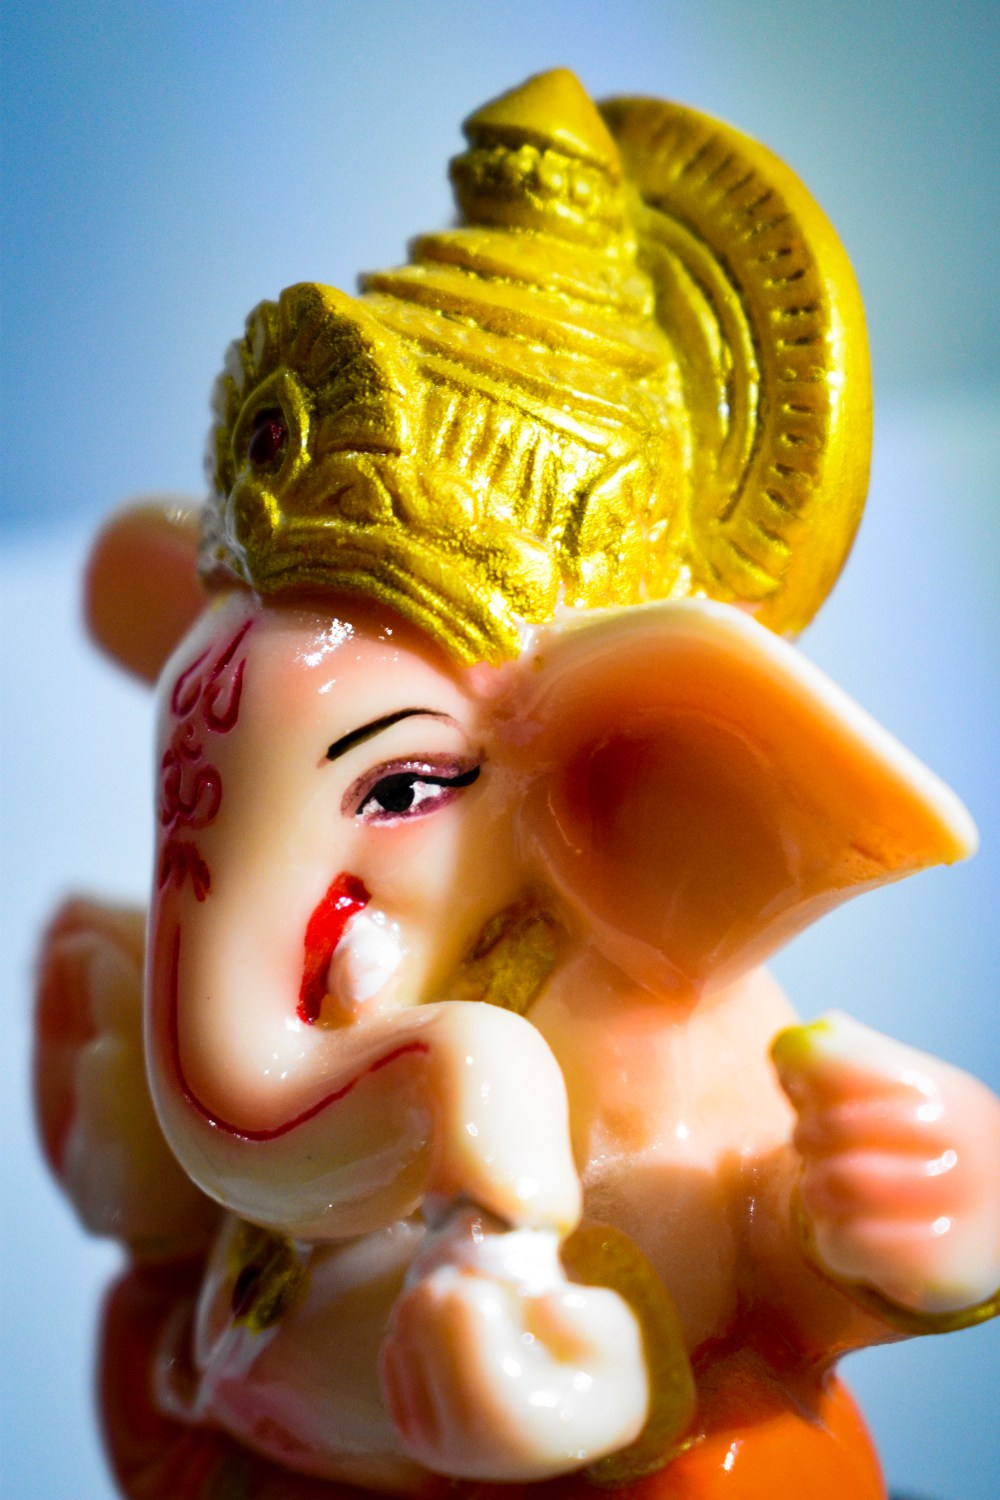 500 ganpati pictures hd